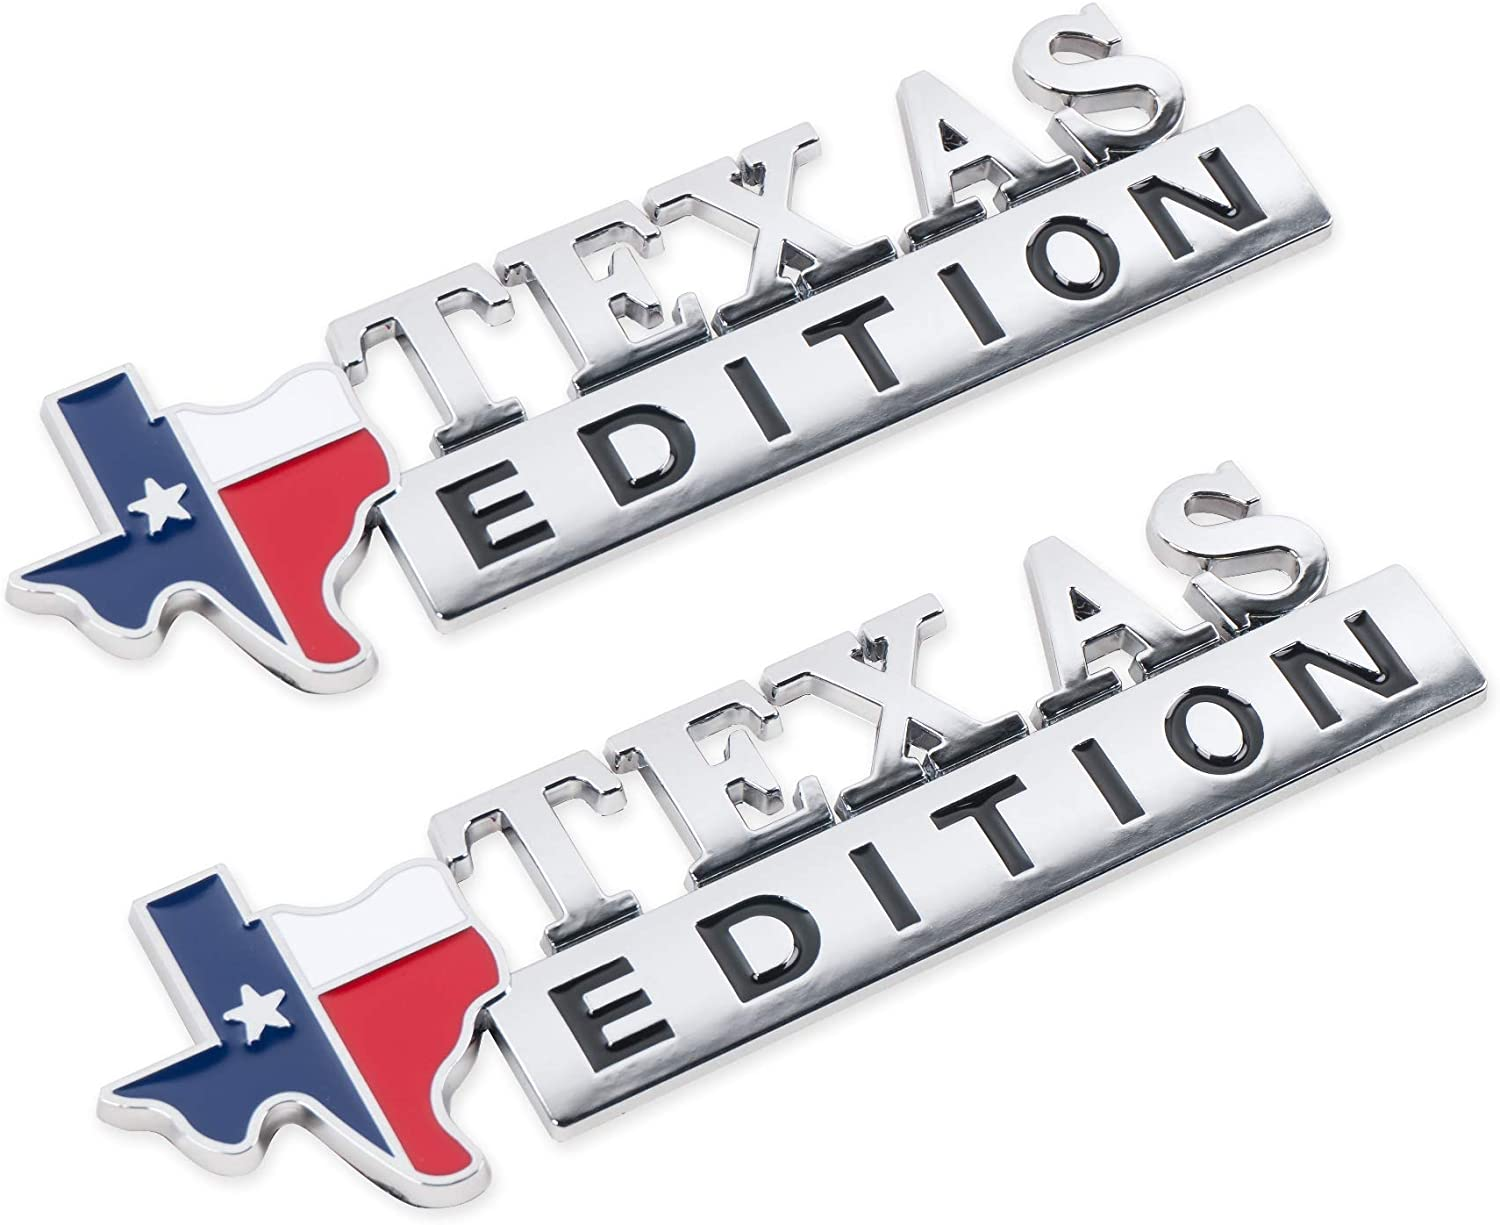 2Pack Virginia Beach Mall 3D Texas Edition Emblem Decal Stickers New Shipping Free for F150 F350 F250